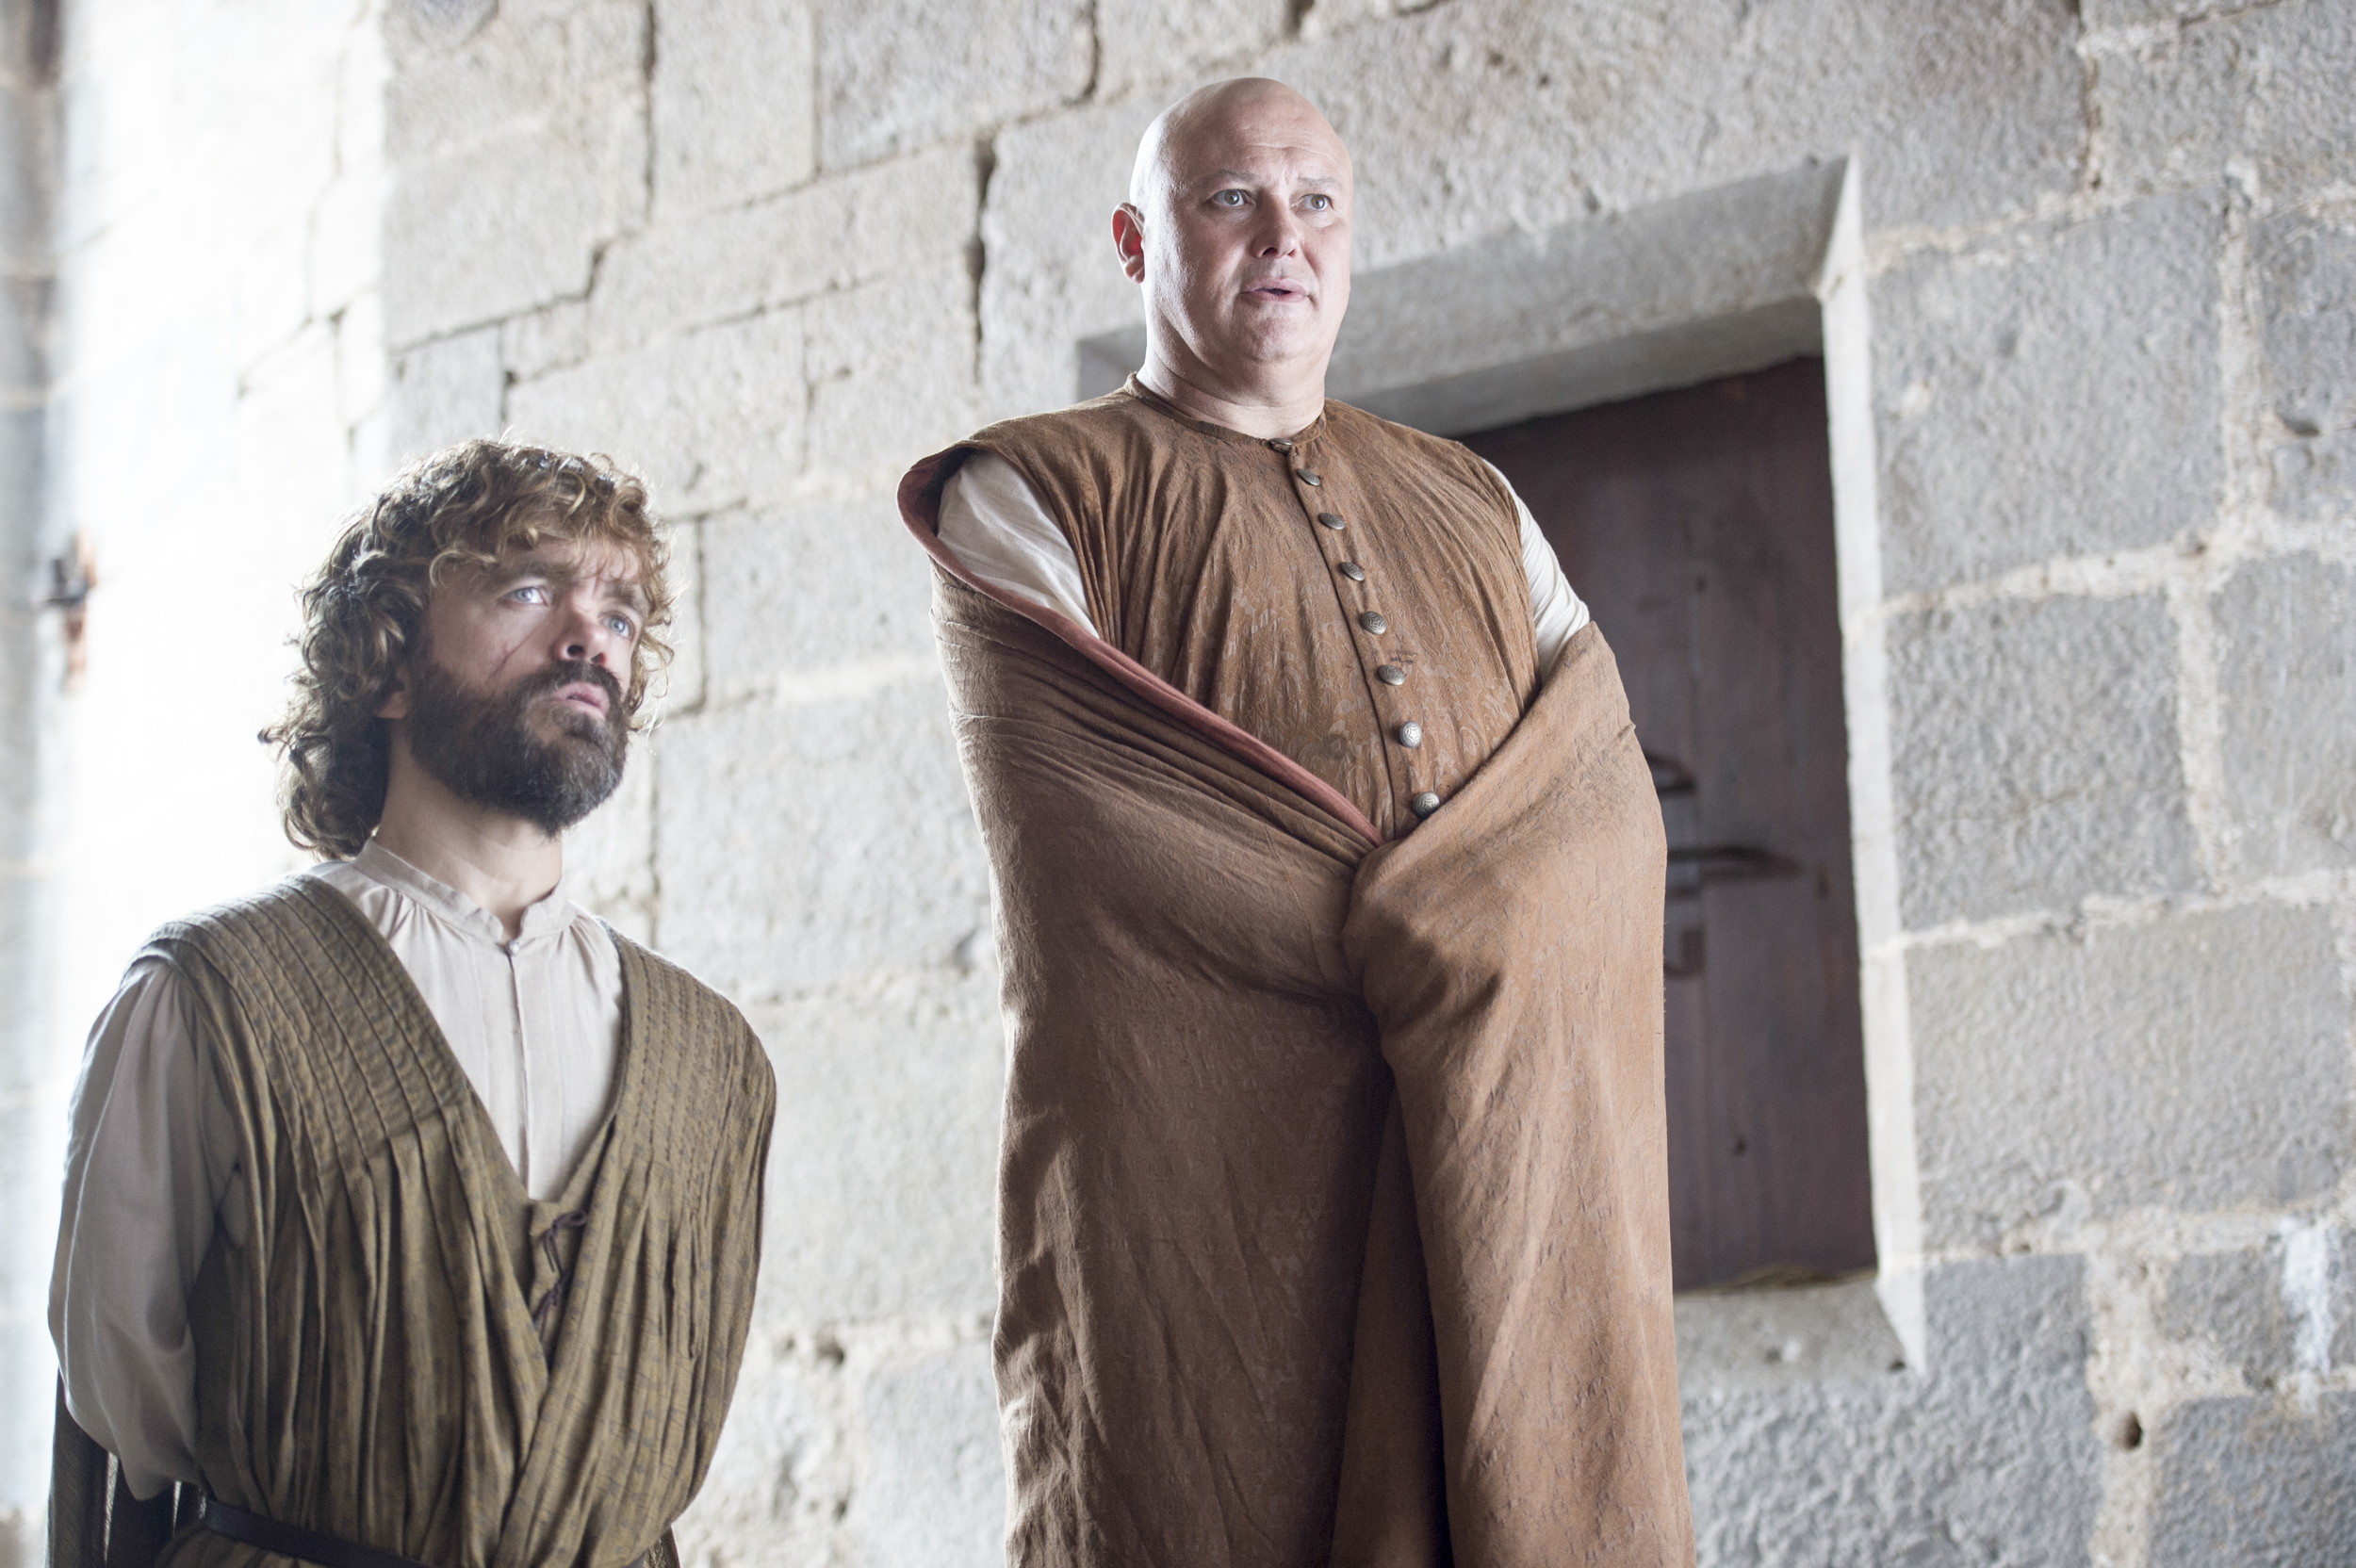 game of thrones season 6 photos, tyrion lannister, lord varys